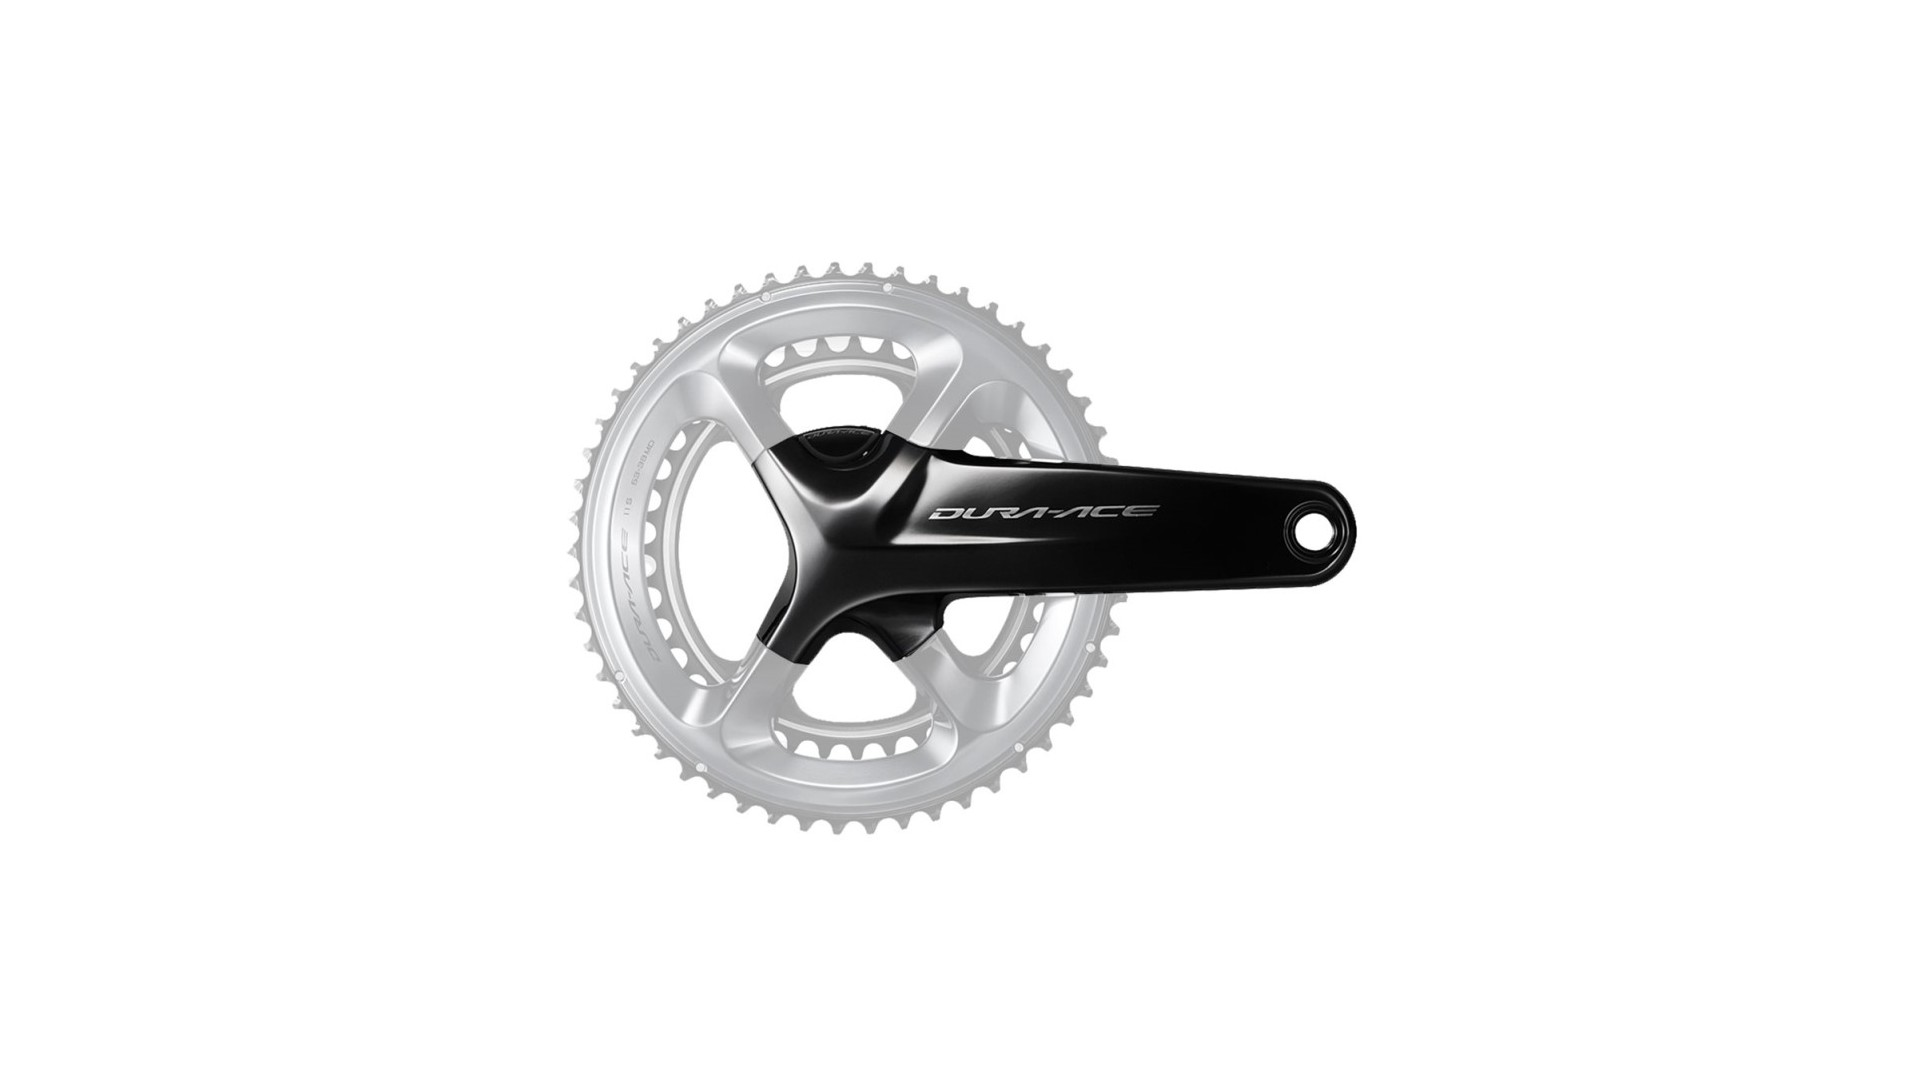 Crankset Dura Ace R9100 170 Dual Side Power Meter W/O Chainrings